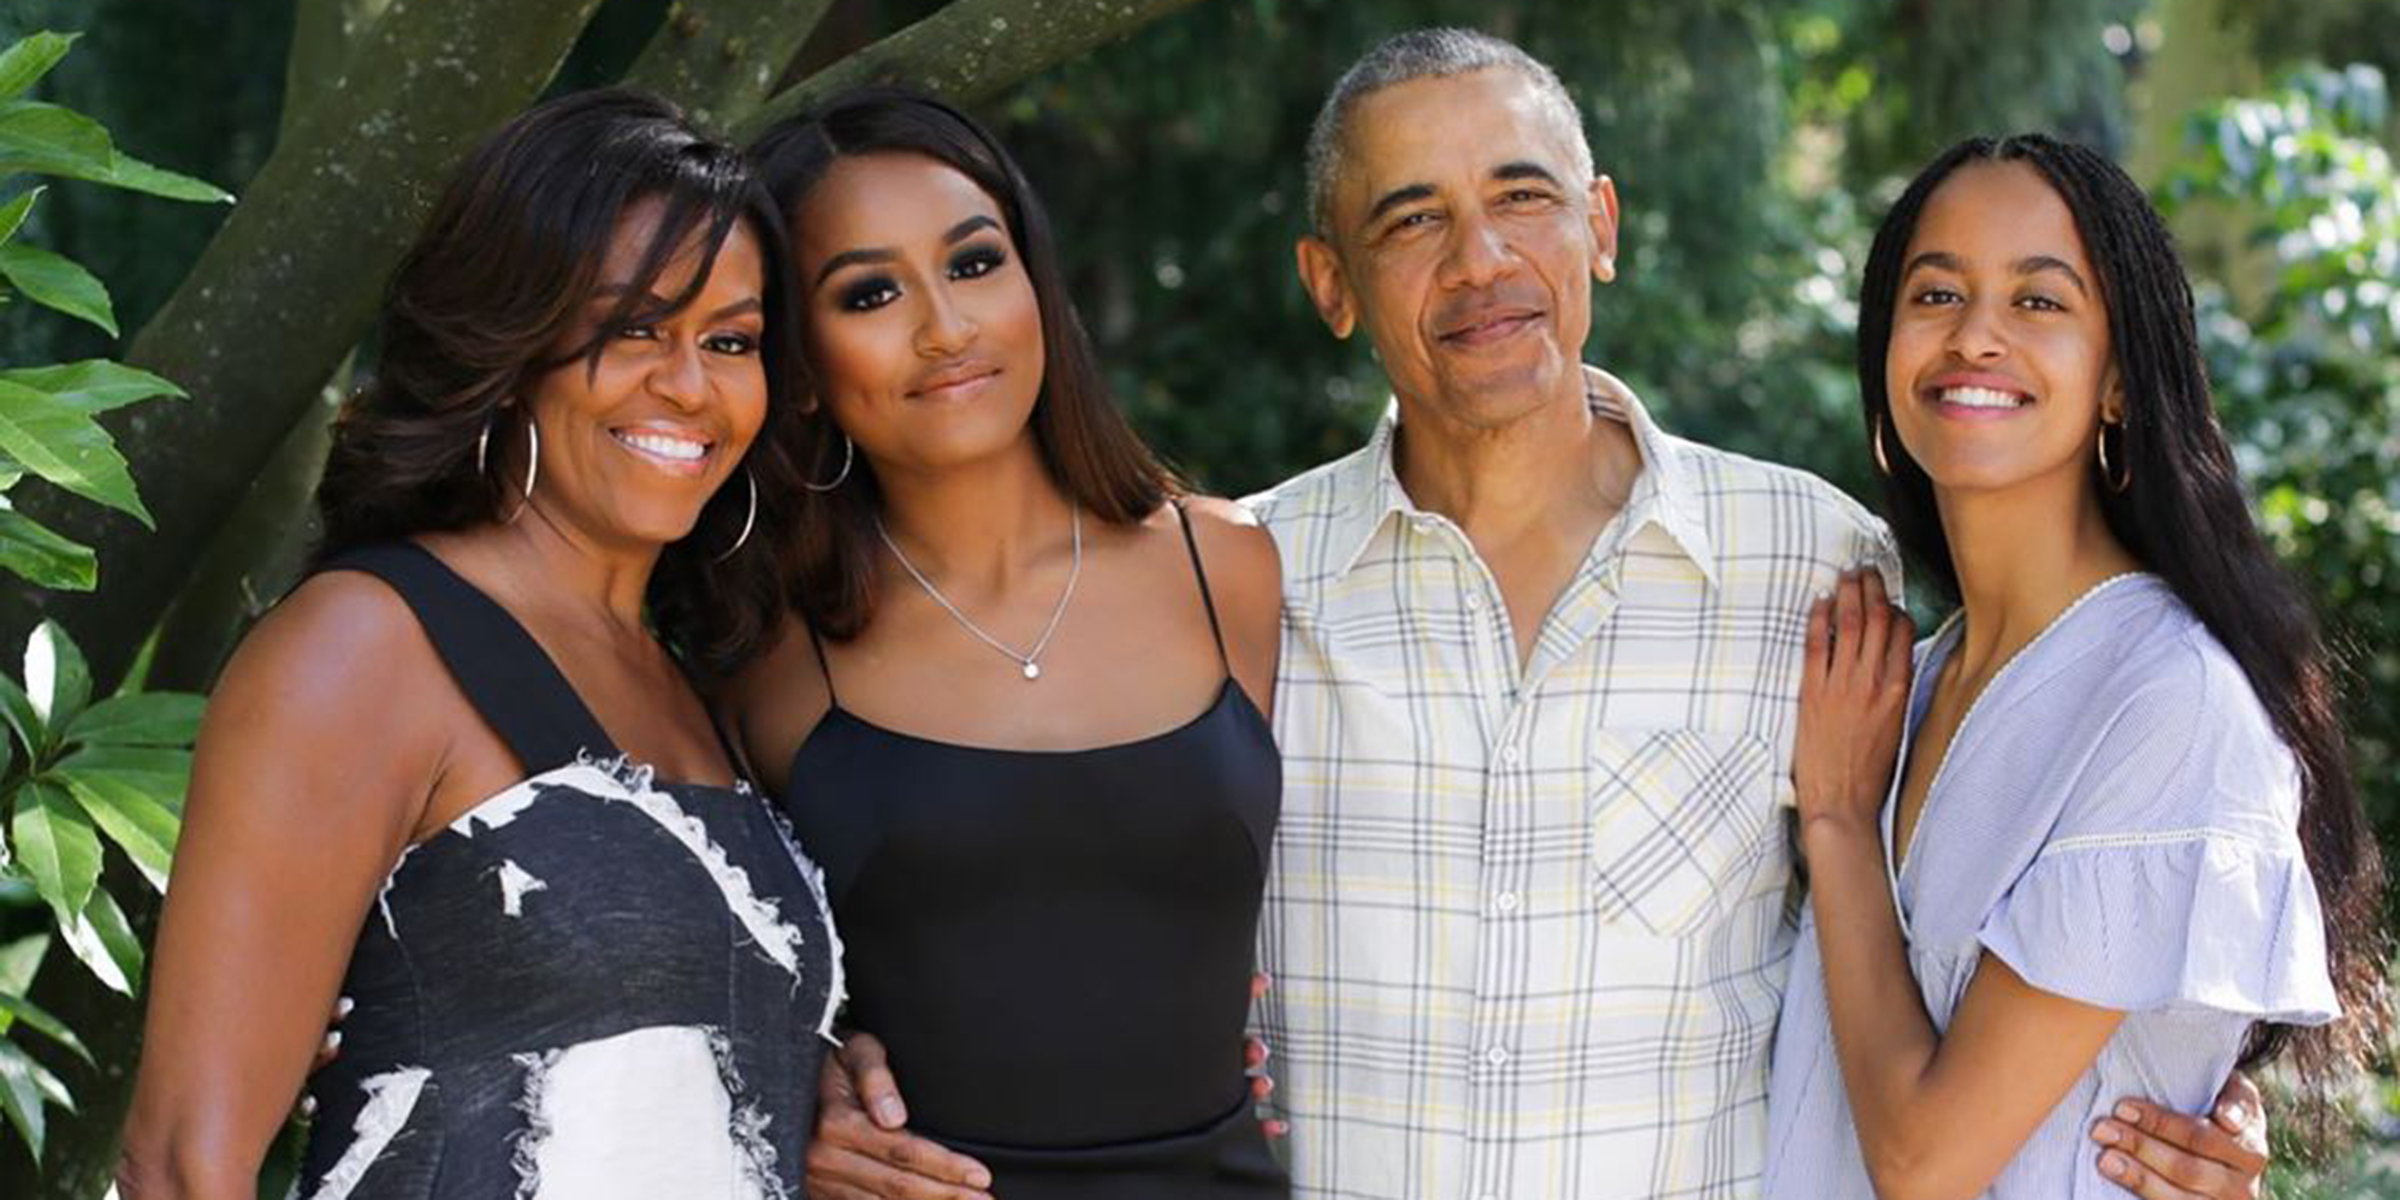 Is Obama In Hawaiir For Christmas 2020 Michelle Obama reveals family Christmas card